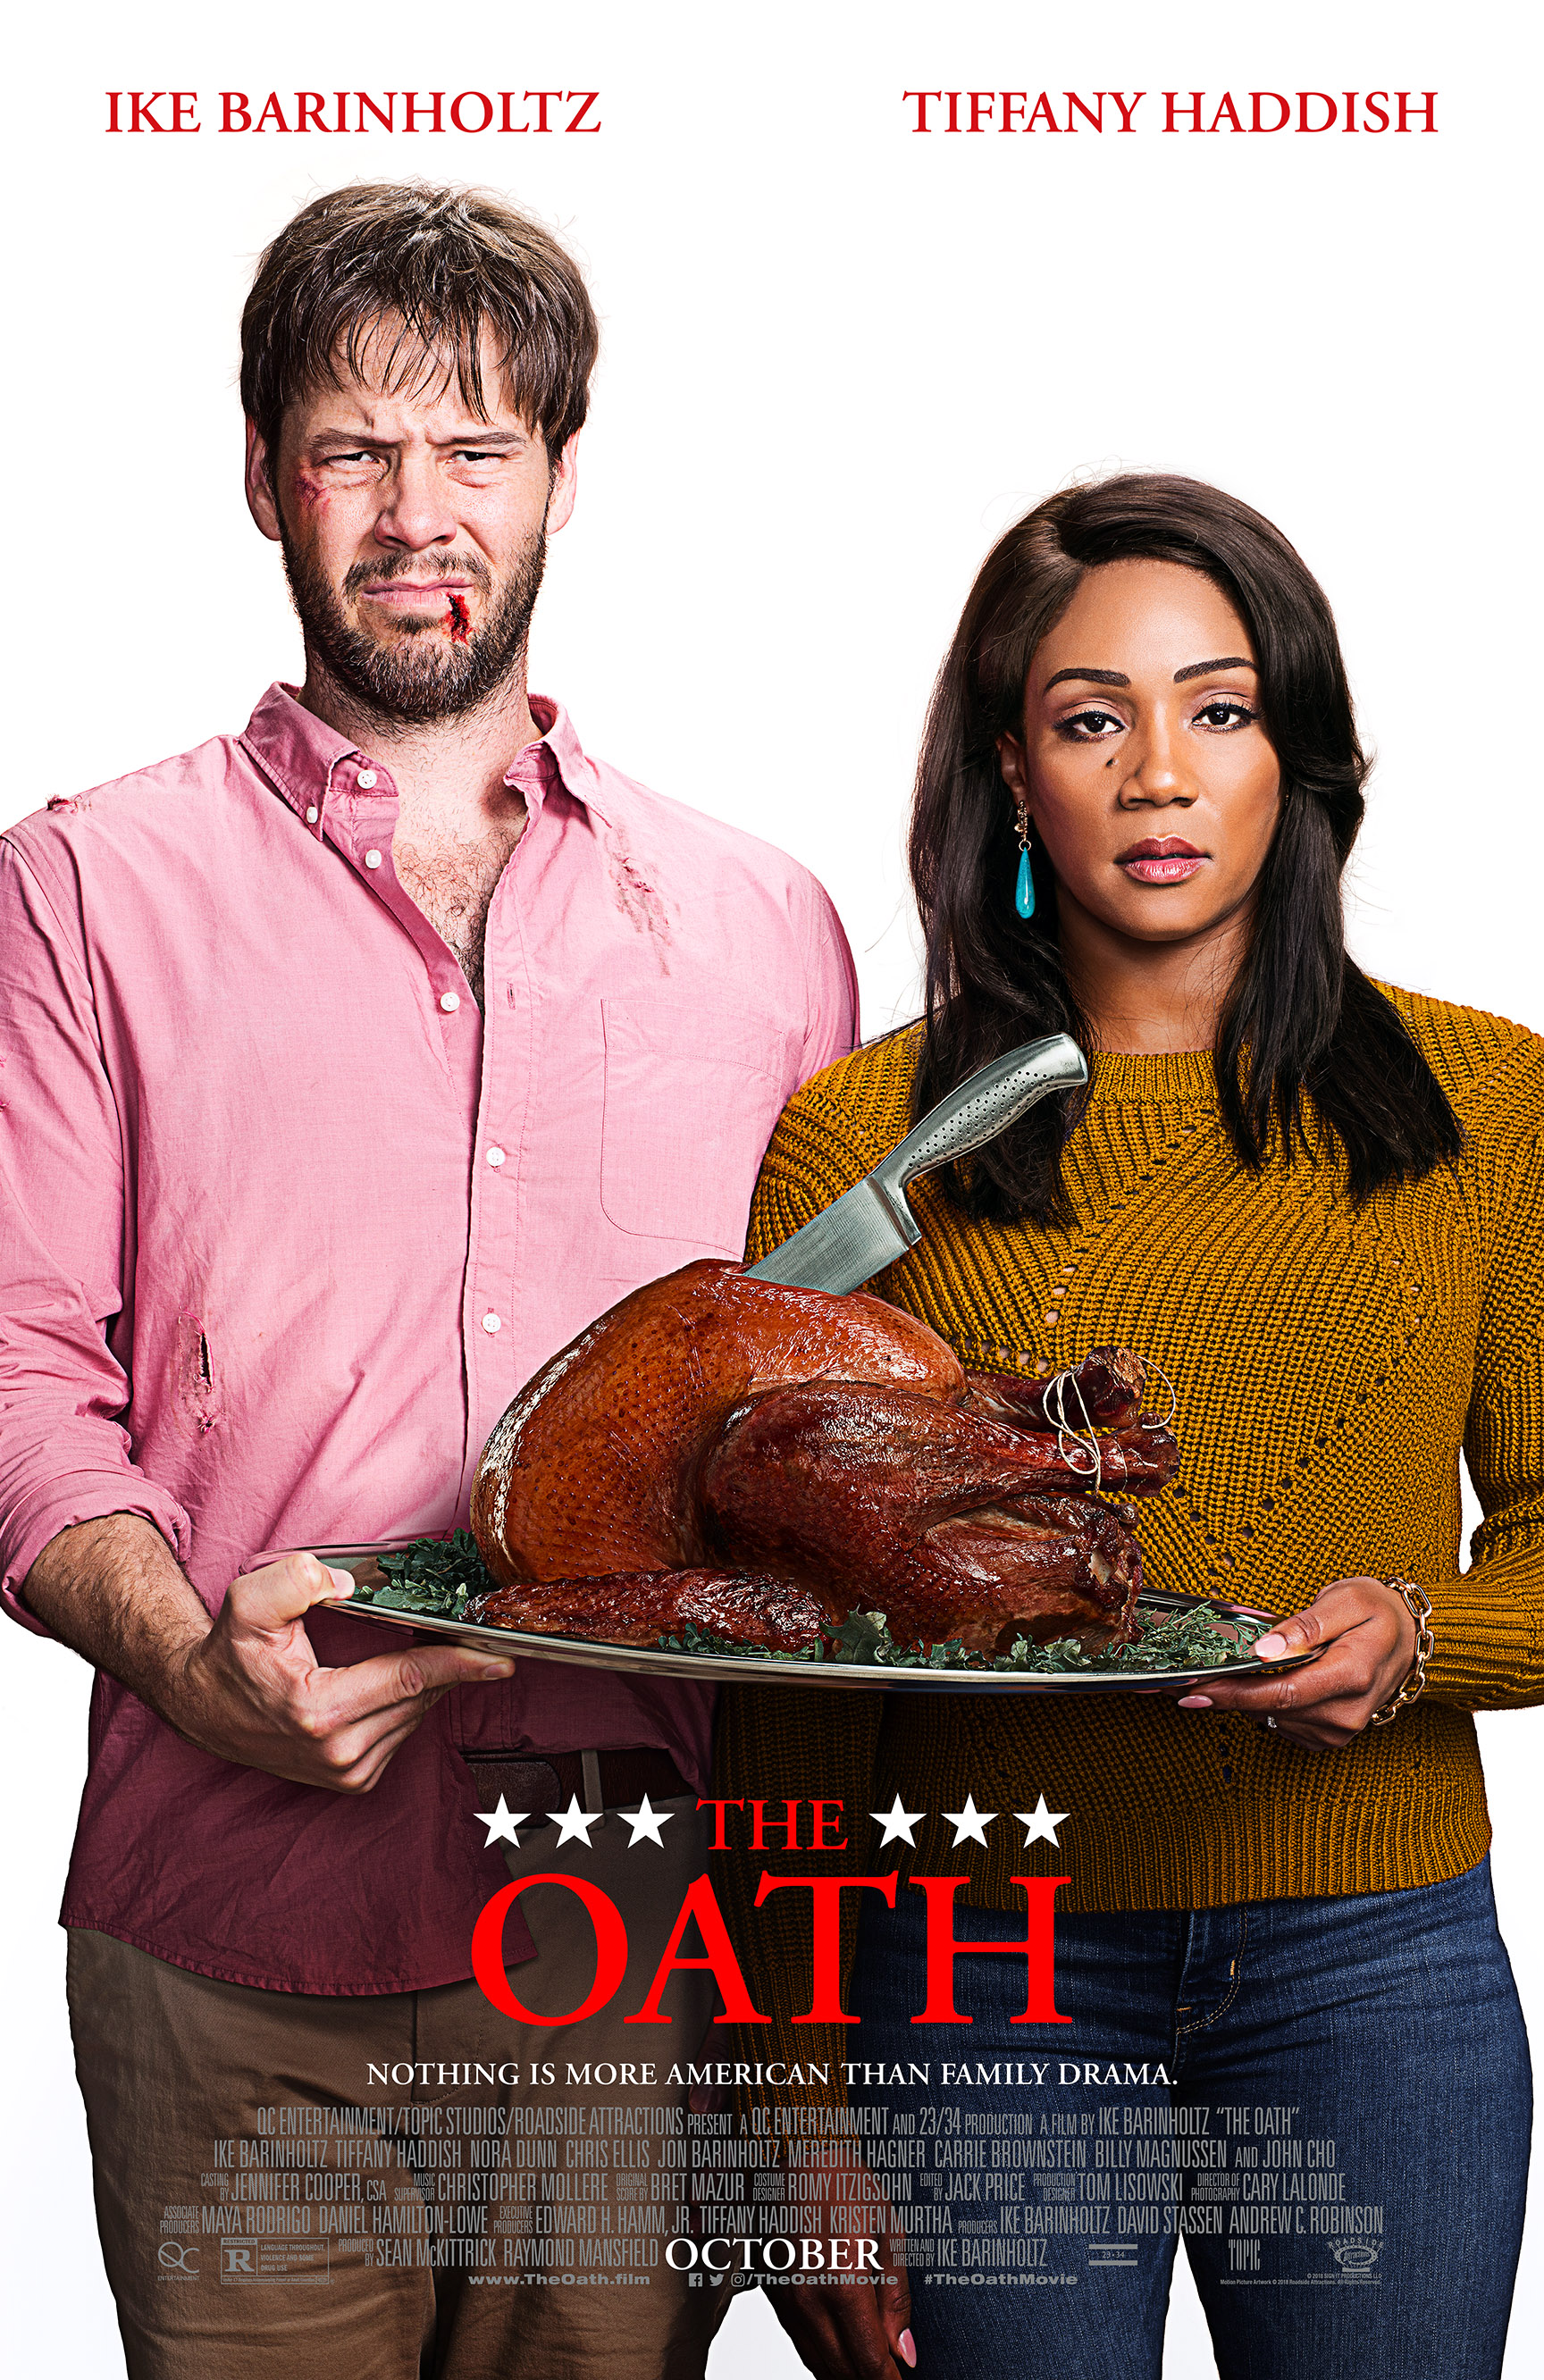 Ike Barinholtz and Tiffany Haddish